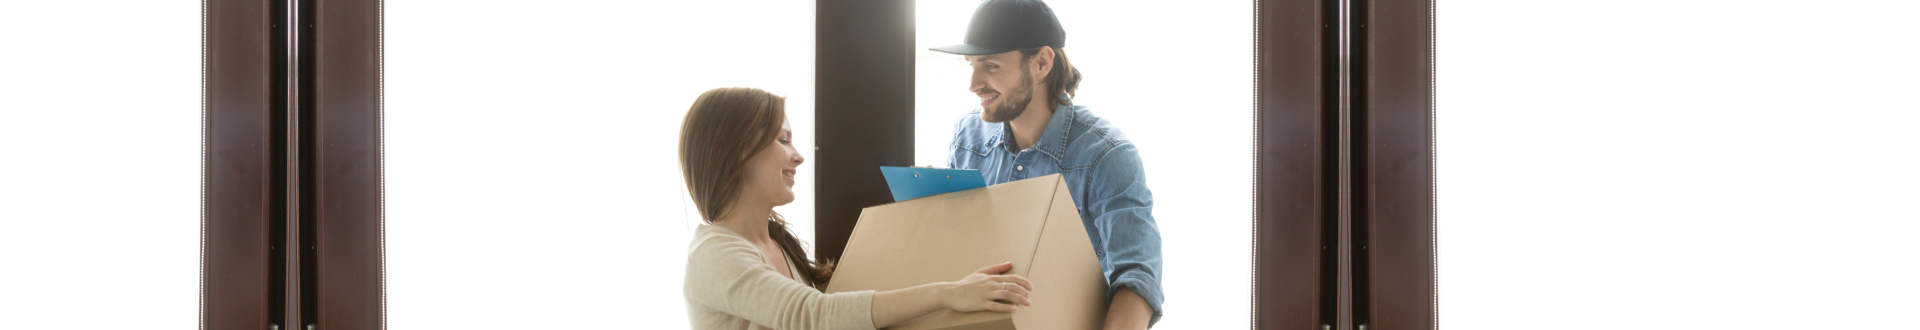 delivery man handing a package to a customer